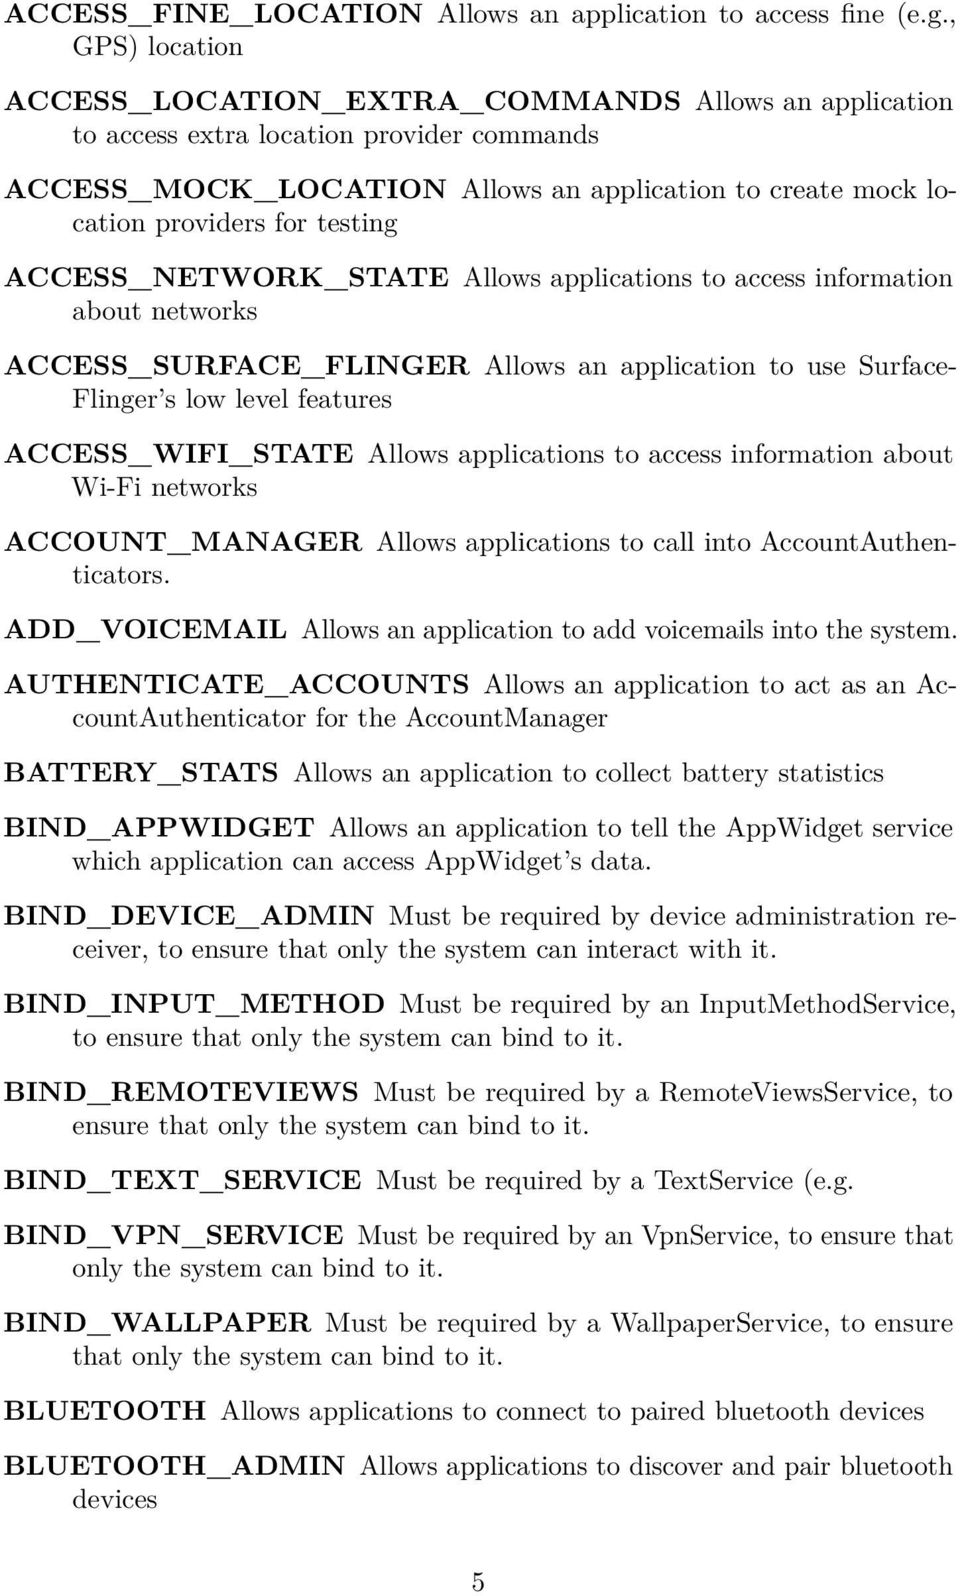 testing ACCESS_NETWORK_STATE Allows applications to access information about networks ACCESS_SURFACE_FLINGER Allows an application to use Surface- Flinger s low level features ACCESS_WIFI_STATE